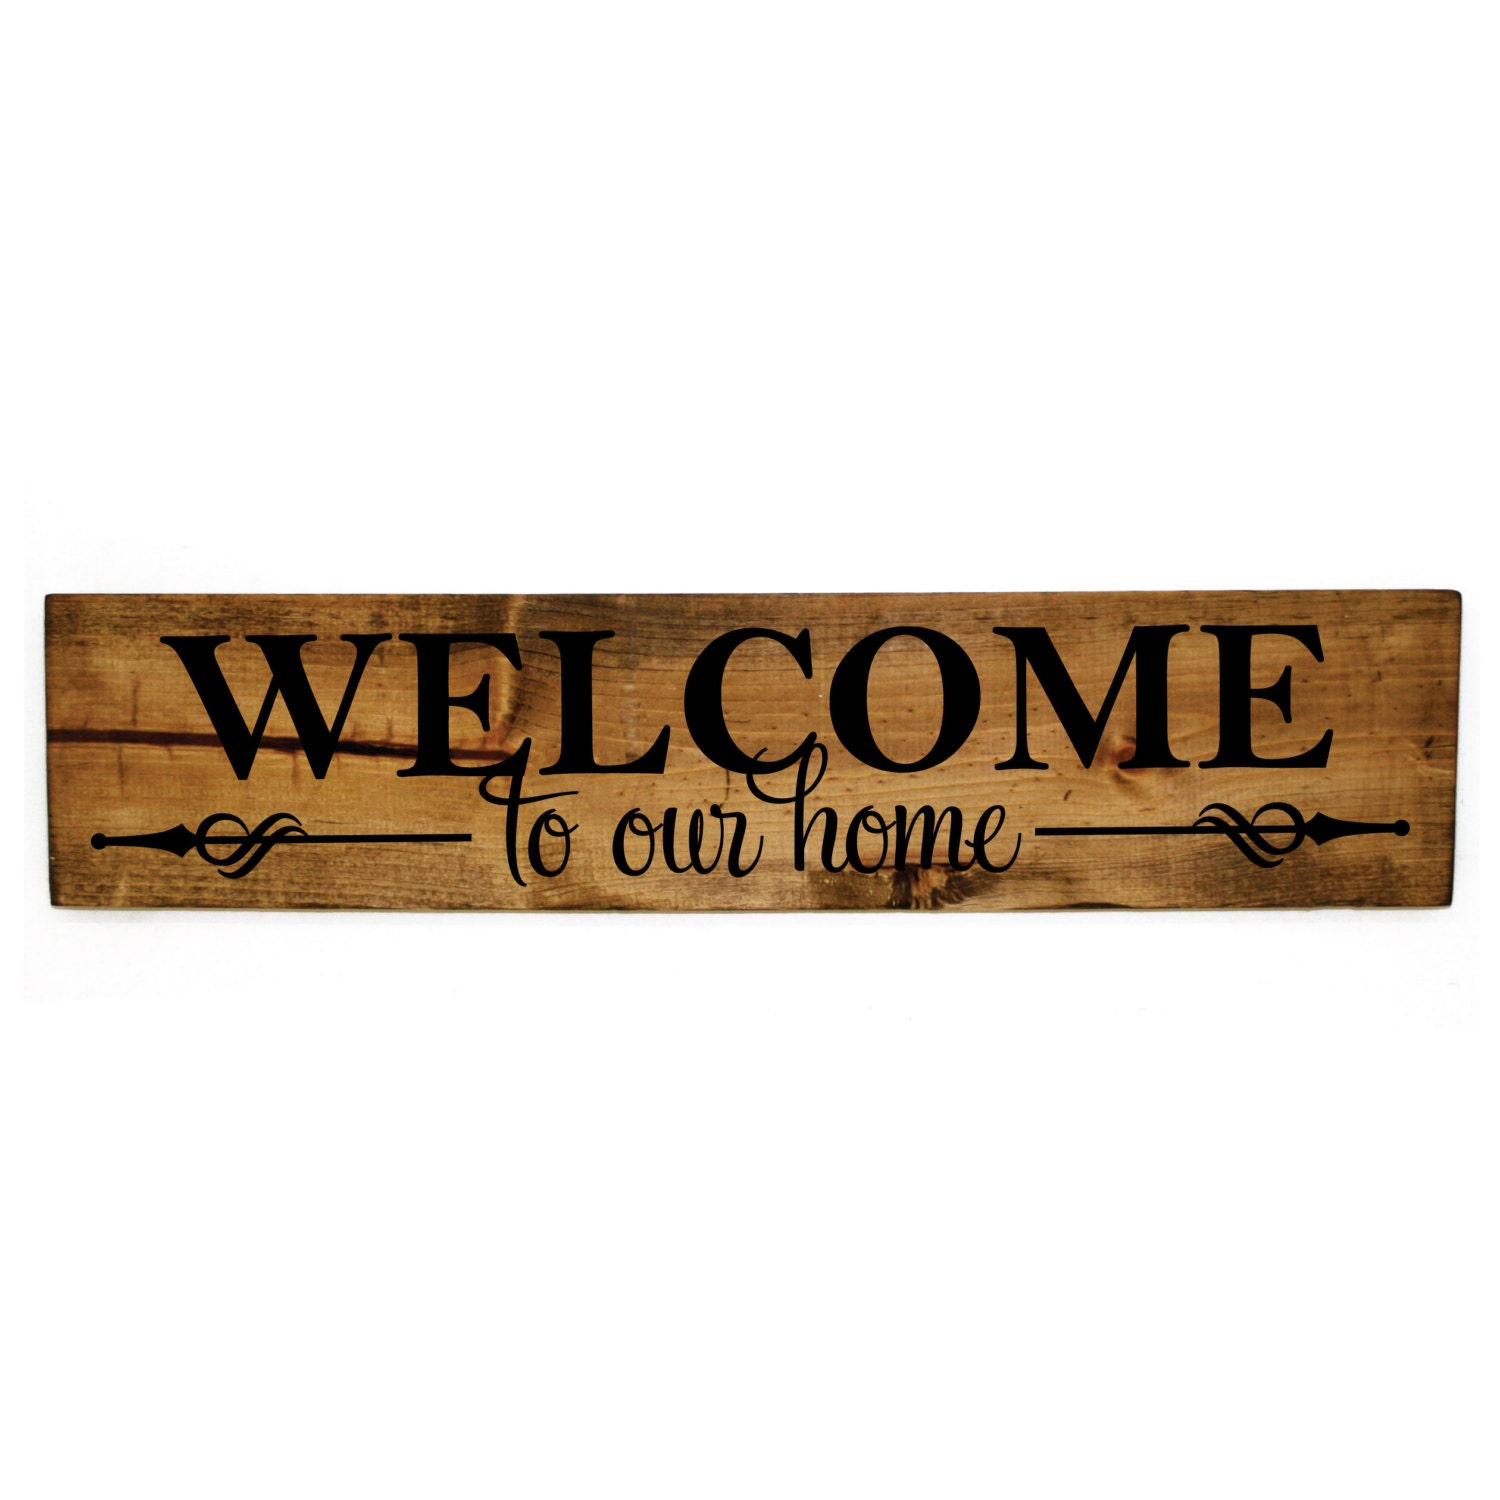 Welcome To Our Home: Welcome To Our Home Wood Sign Wood Home Decor Rustic Wood